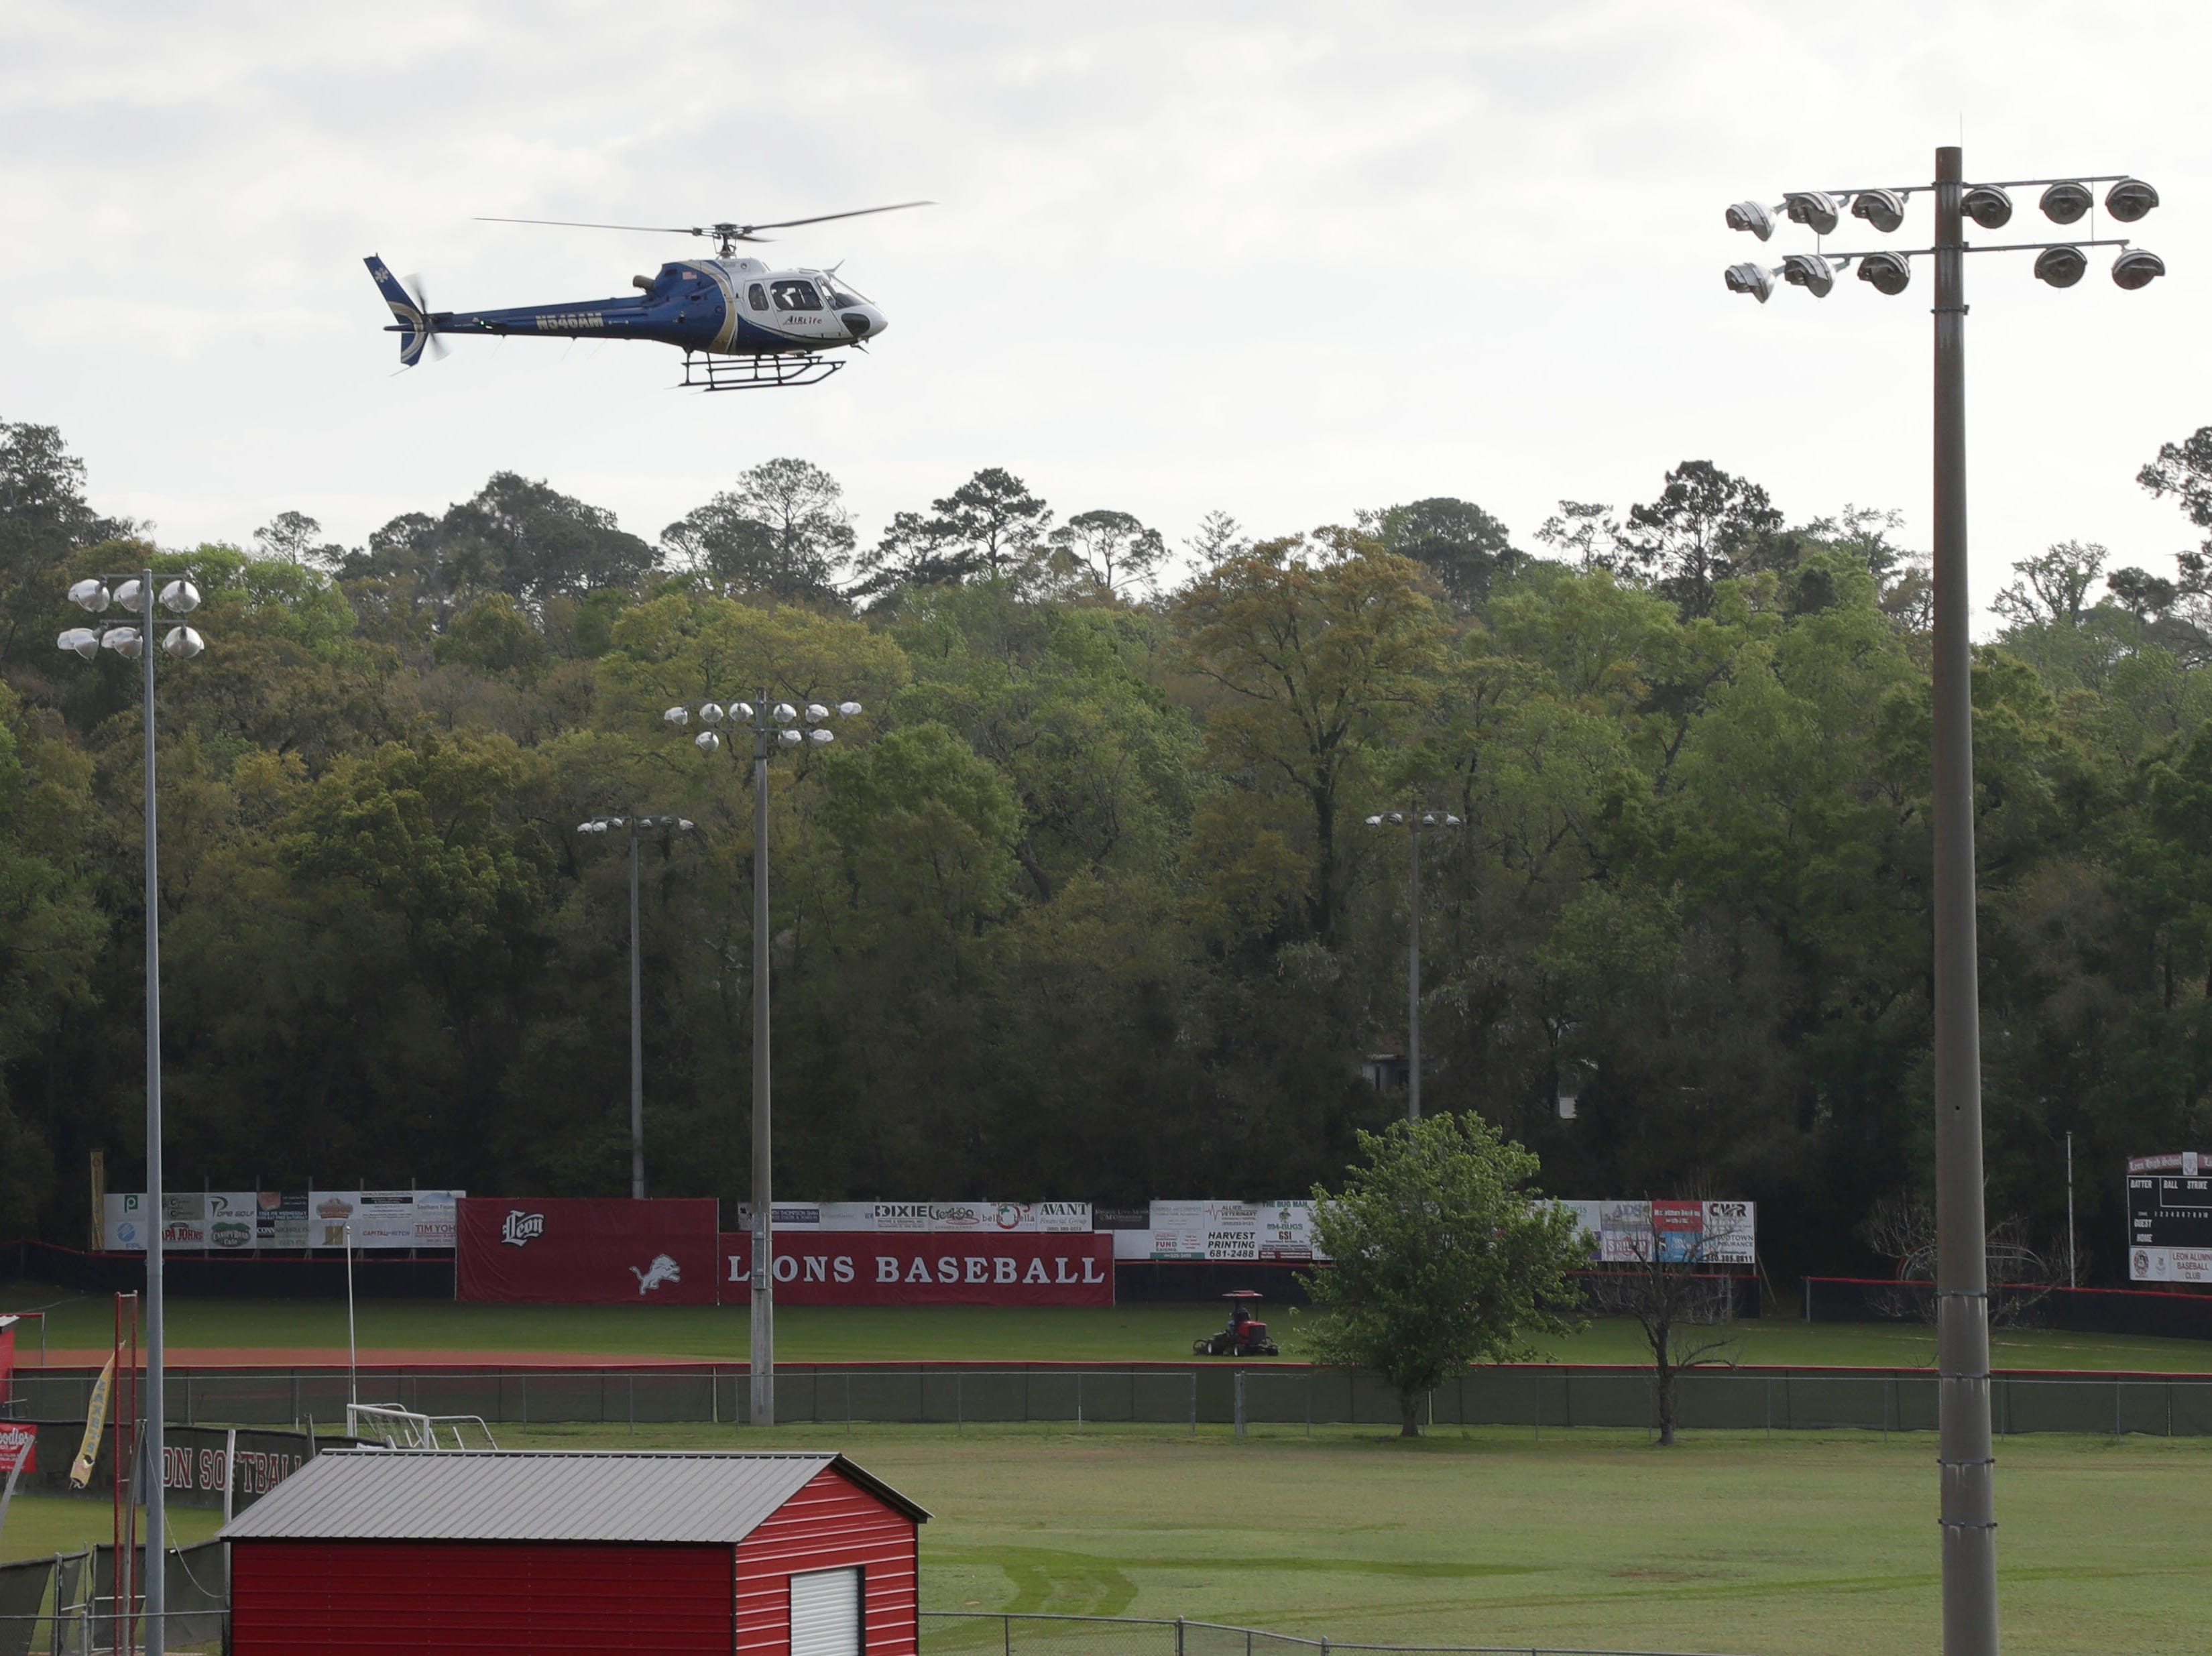 A helicopter arrives to Leon High School while students watch as Leon High School partners with the county safety officials to give a simulation on the consequences of drunk driving before the students leave for spring break Friday, March 15, 2019.